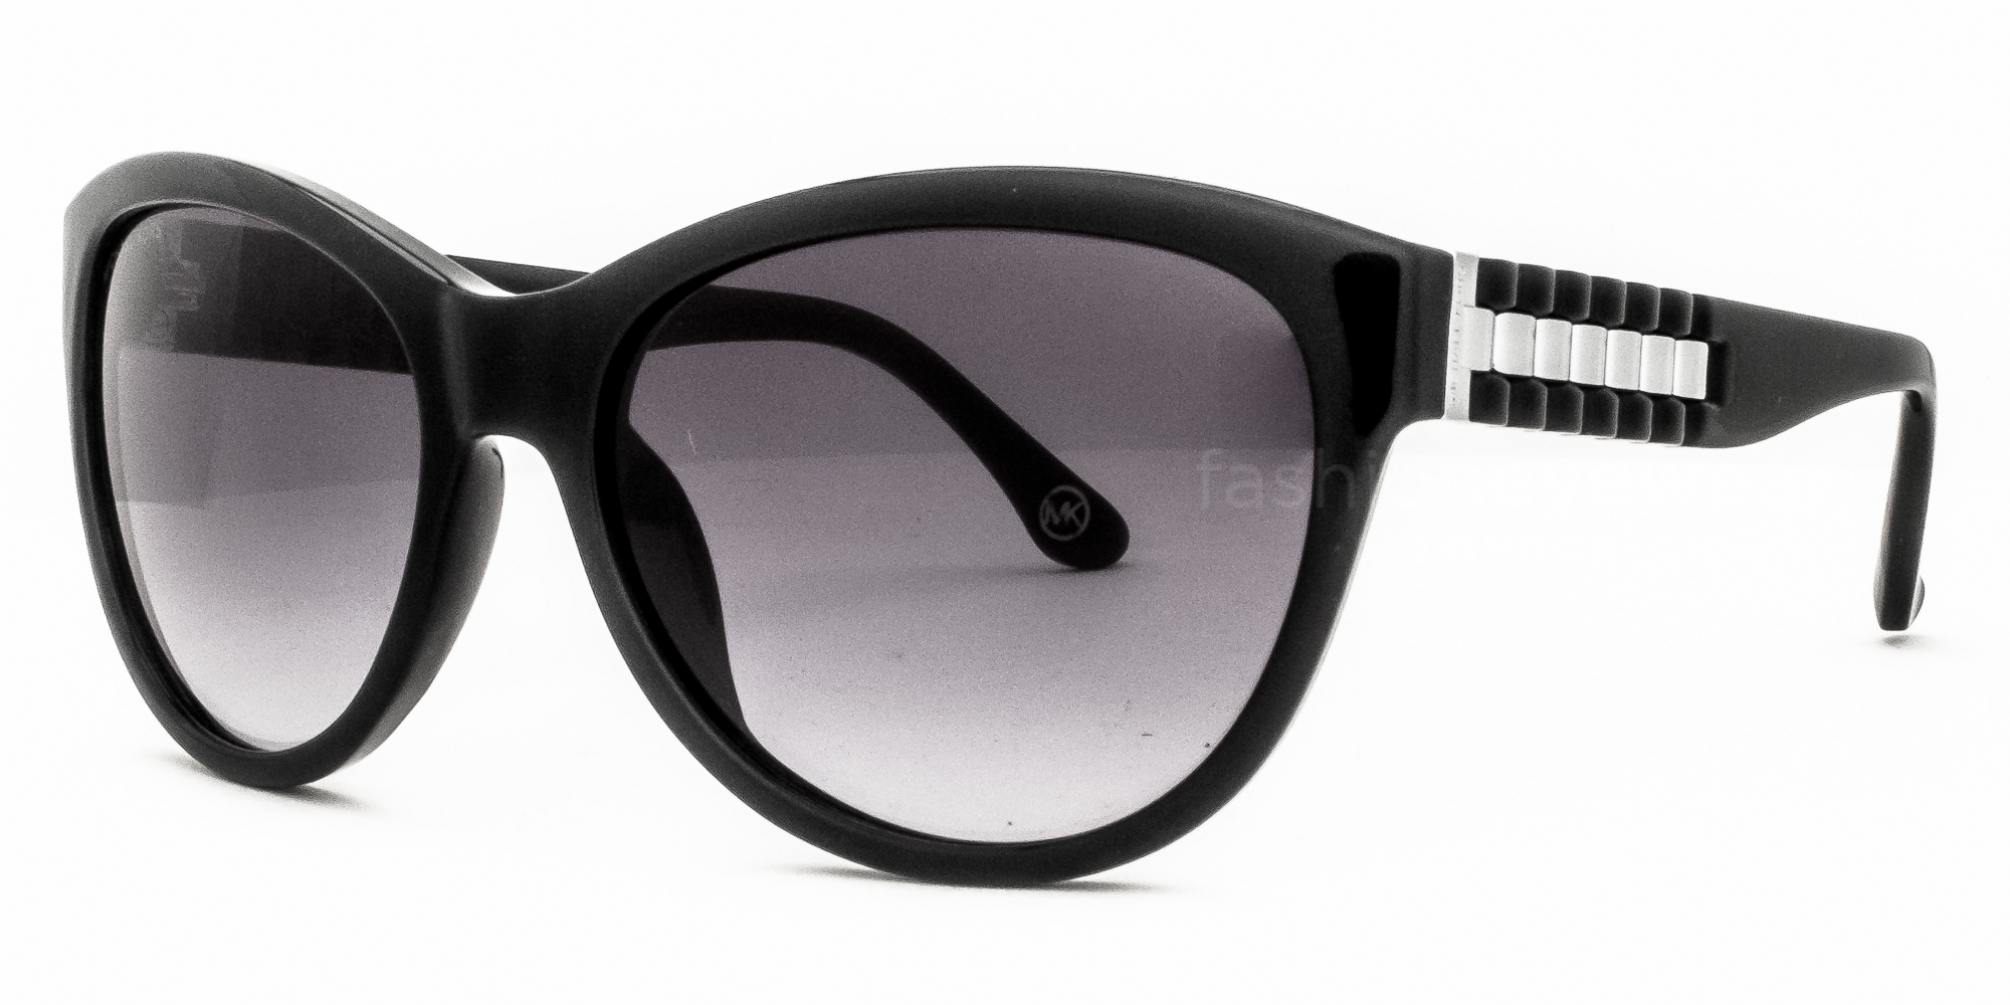 84be0df66d Buy Michael Kors Sunglasses directly from OpticsFast.com